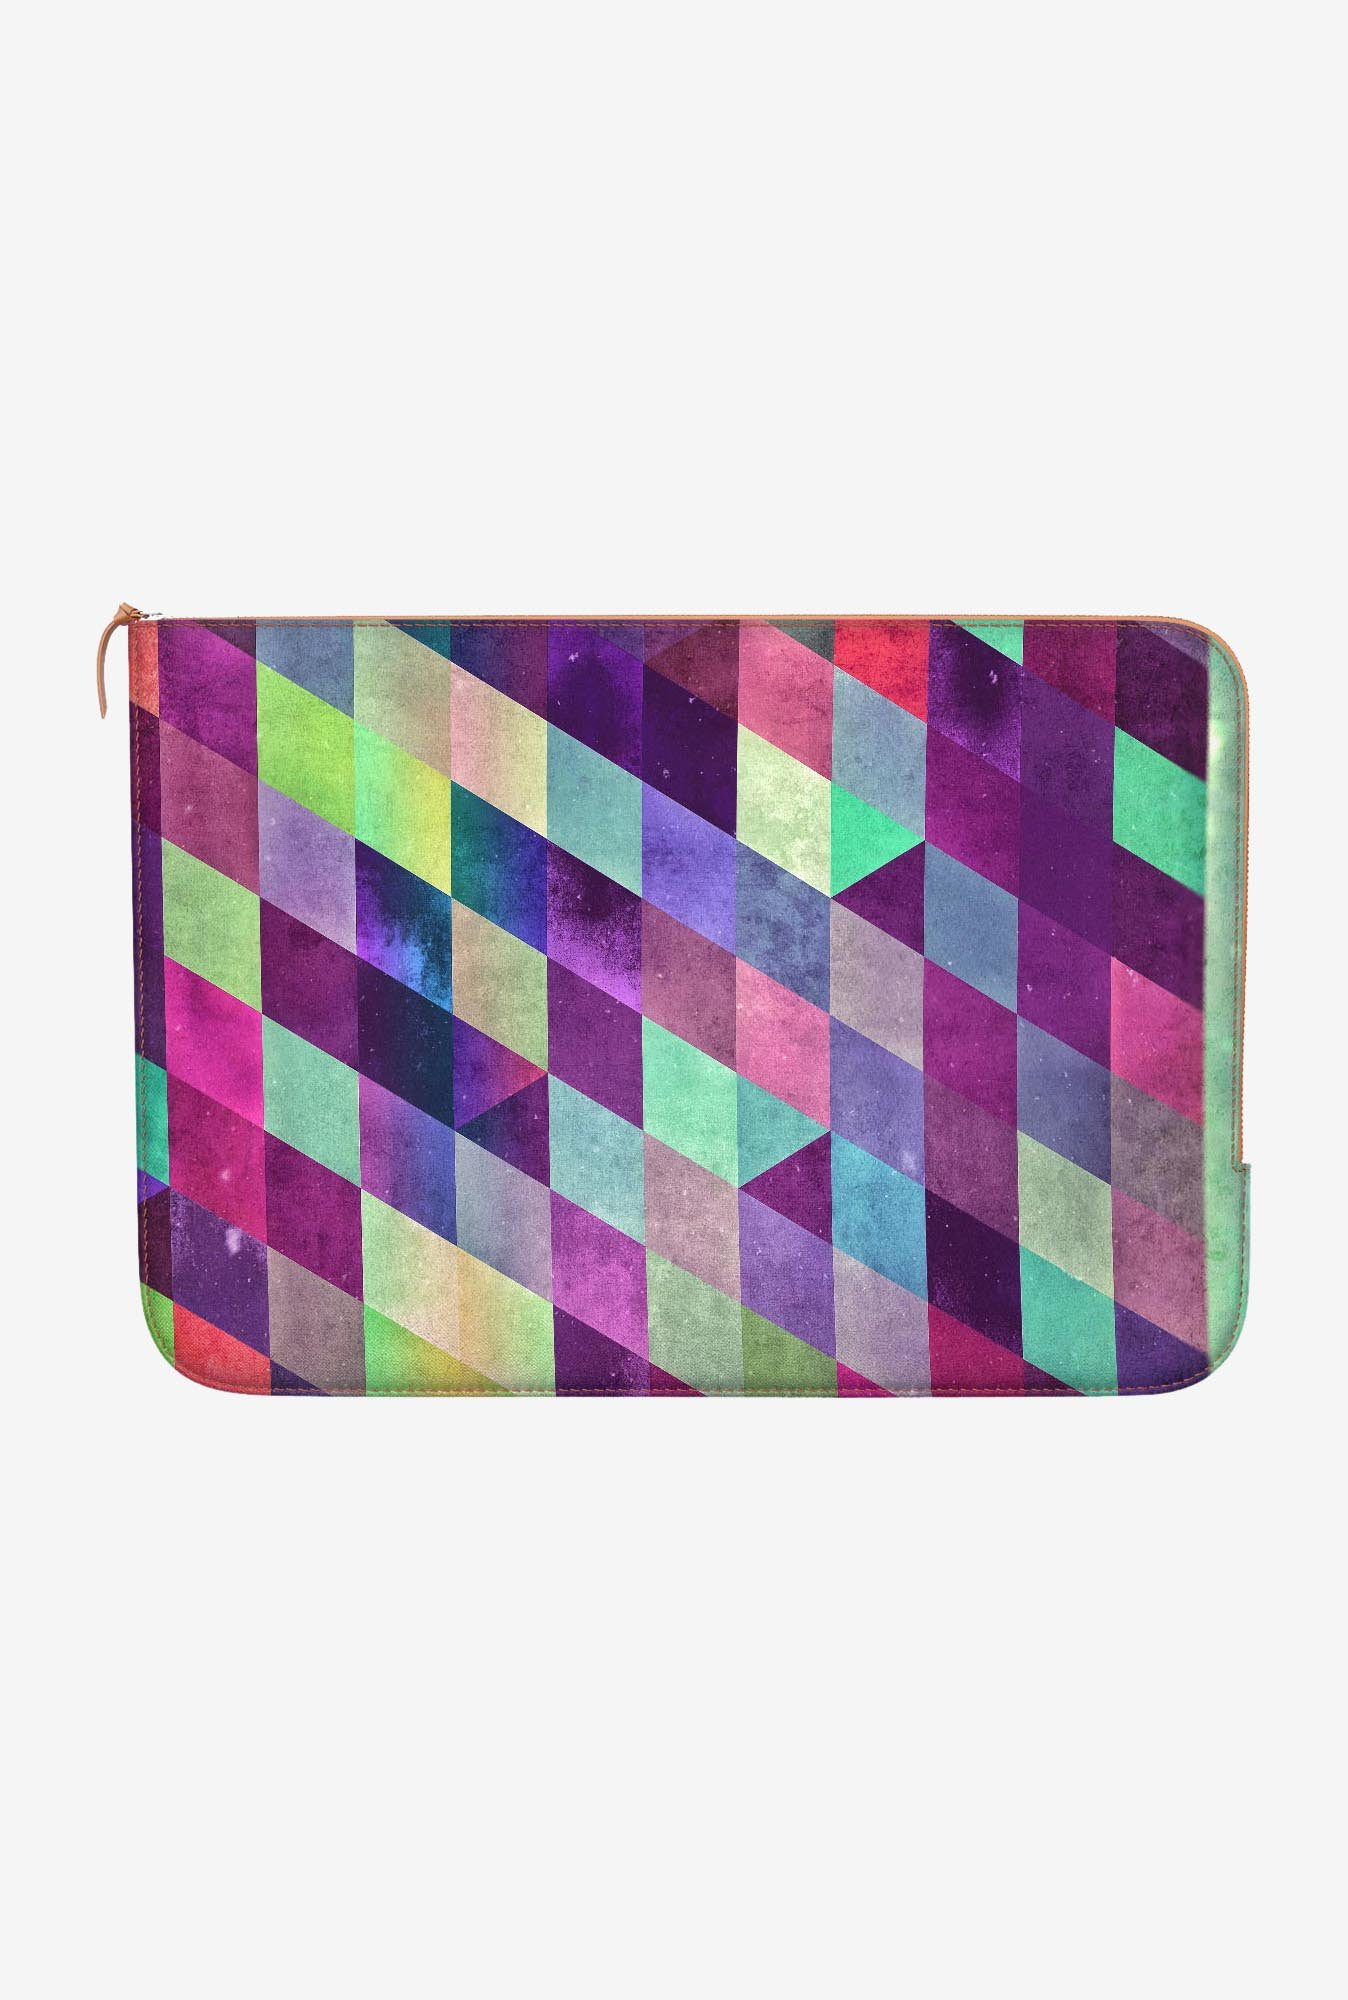 DailyObjects thrydyy MacBook Pro 15 Zippered Sleeve